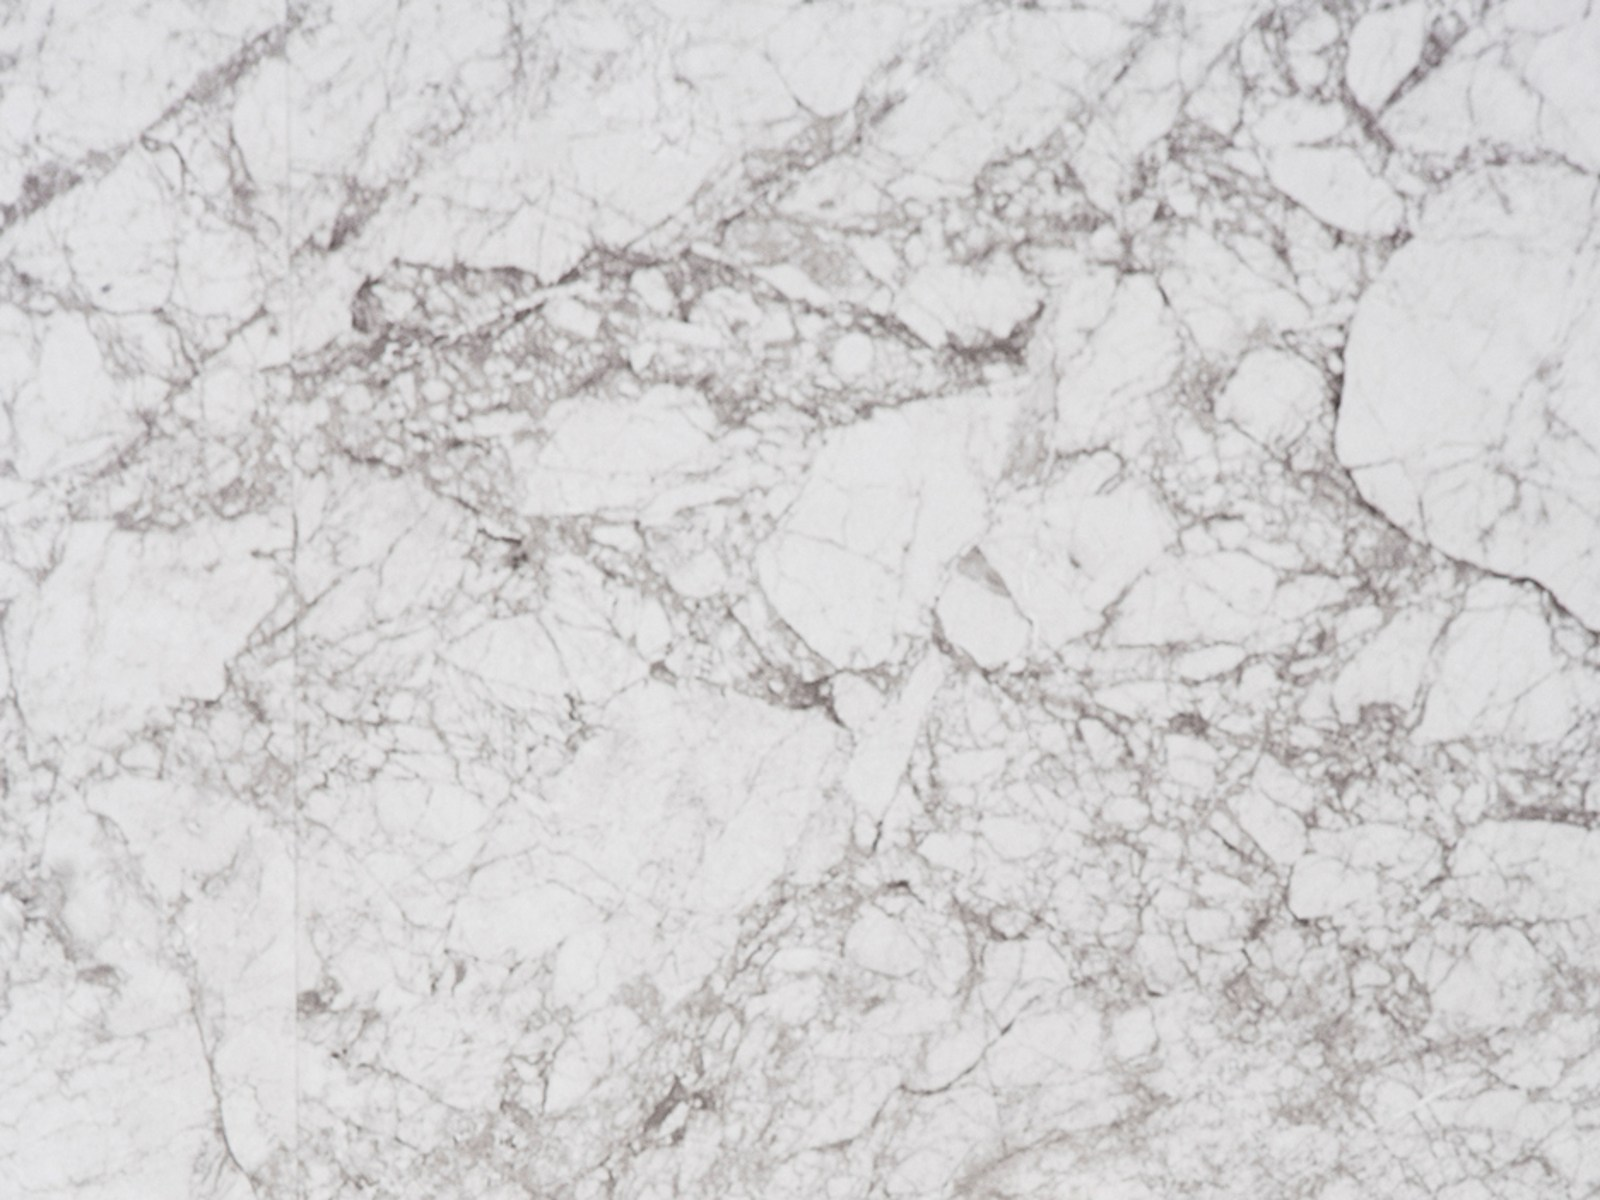 30 Cool Marble Aesthetic Desktop Wallpaper Tumblr Hd Summer Background